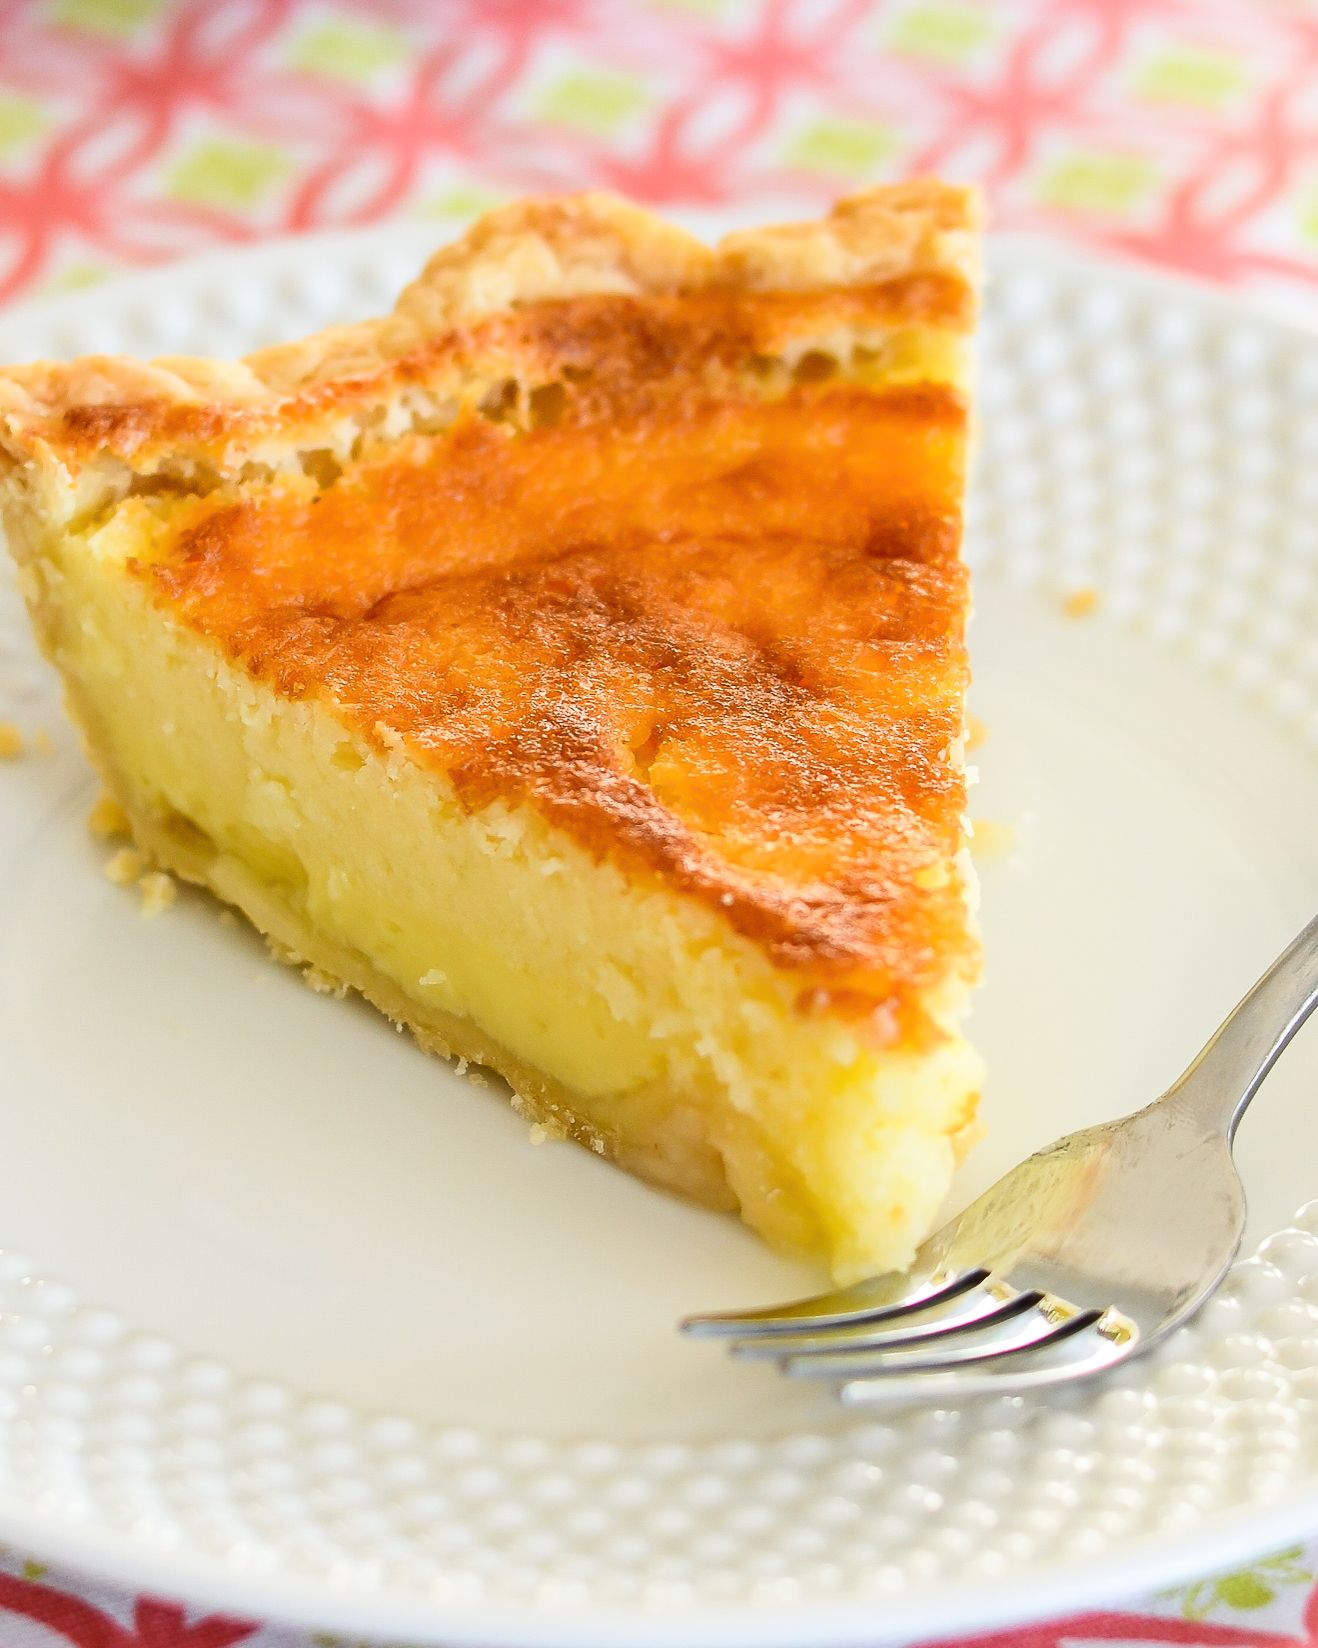 Buttermilk Pie Flaky Pastry Crust And Creamy Custard Like Filling Made With Real Buttermilk This Scrumpti Buttermilk Pie Buttermilk Pie Recipe Pie Recipes